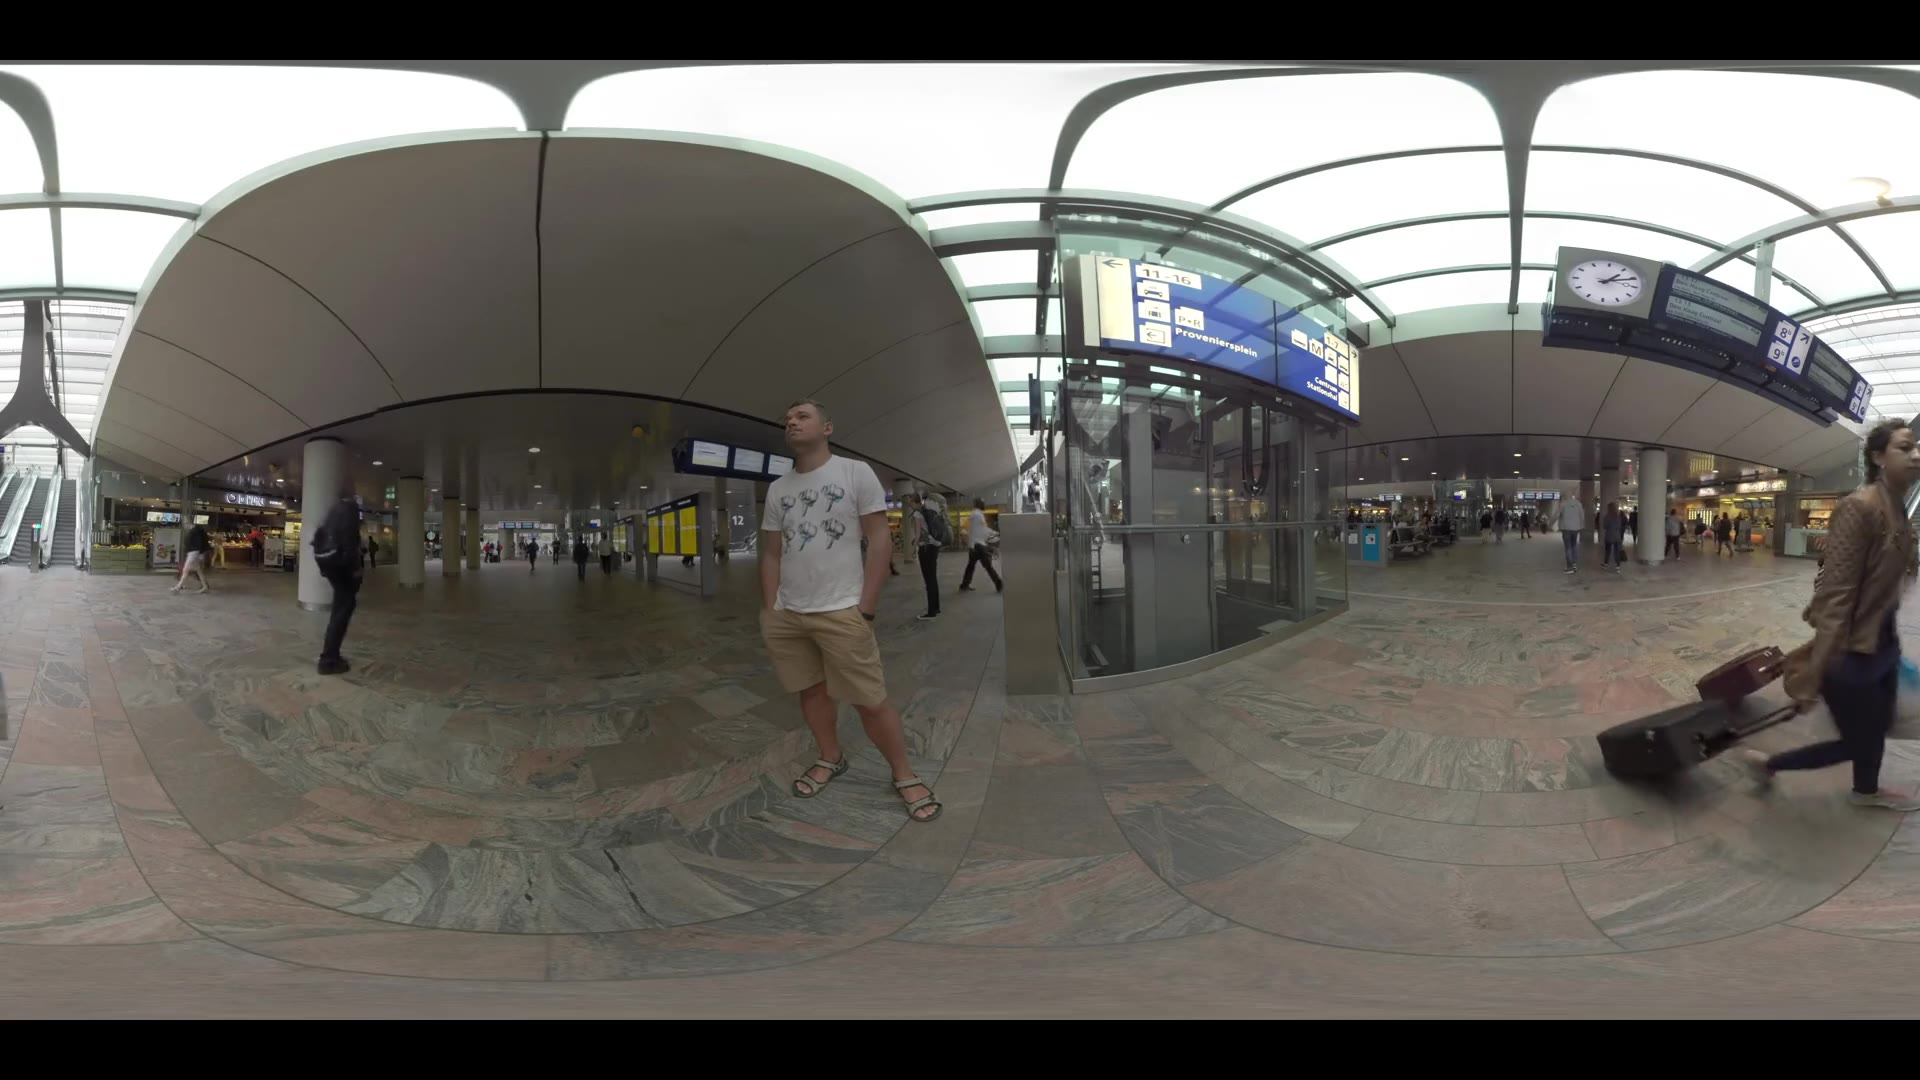 ROTTERDAM, NETHERLANDS - AUGUST 07, 2016: 360 VR video. Rotterdam Centraal station with walking people. Inside view with information screens overhead, entry and exit escalators